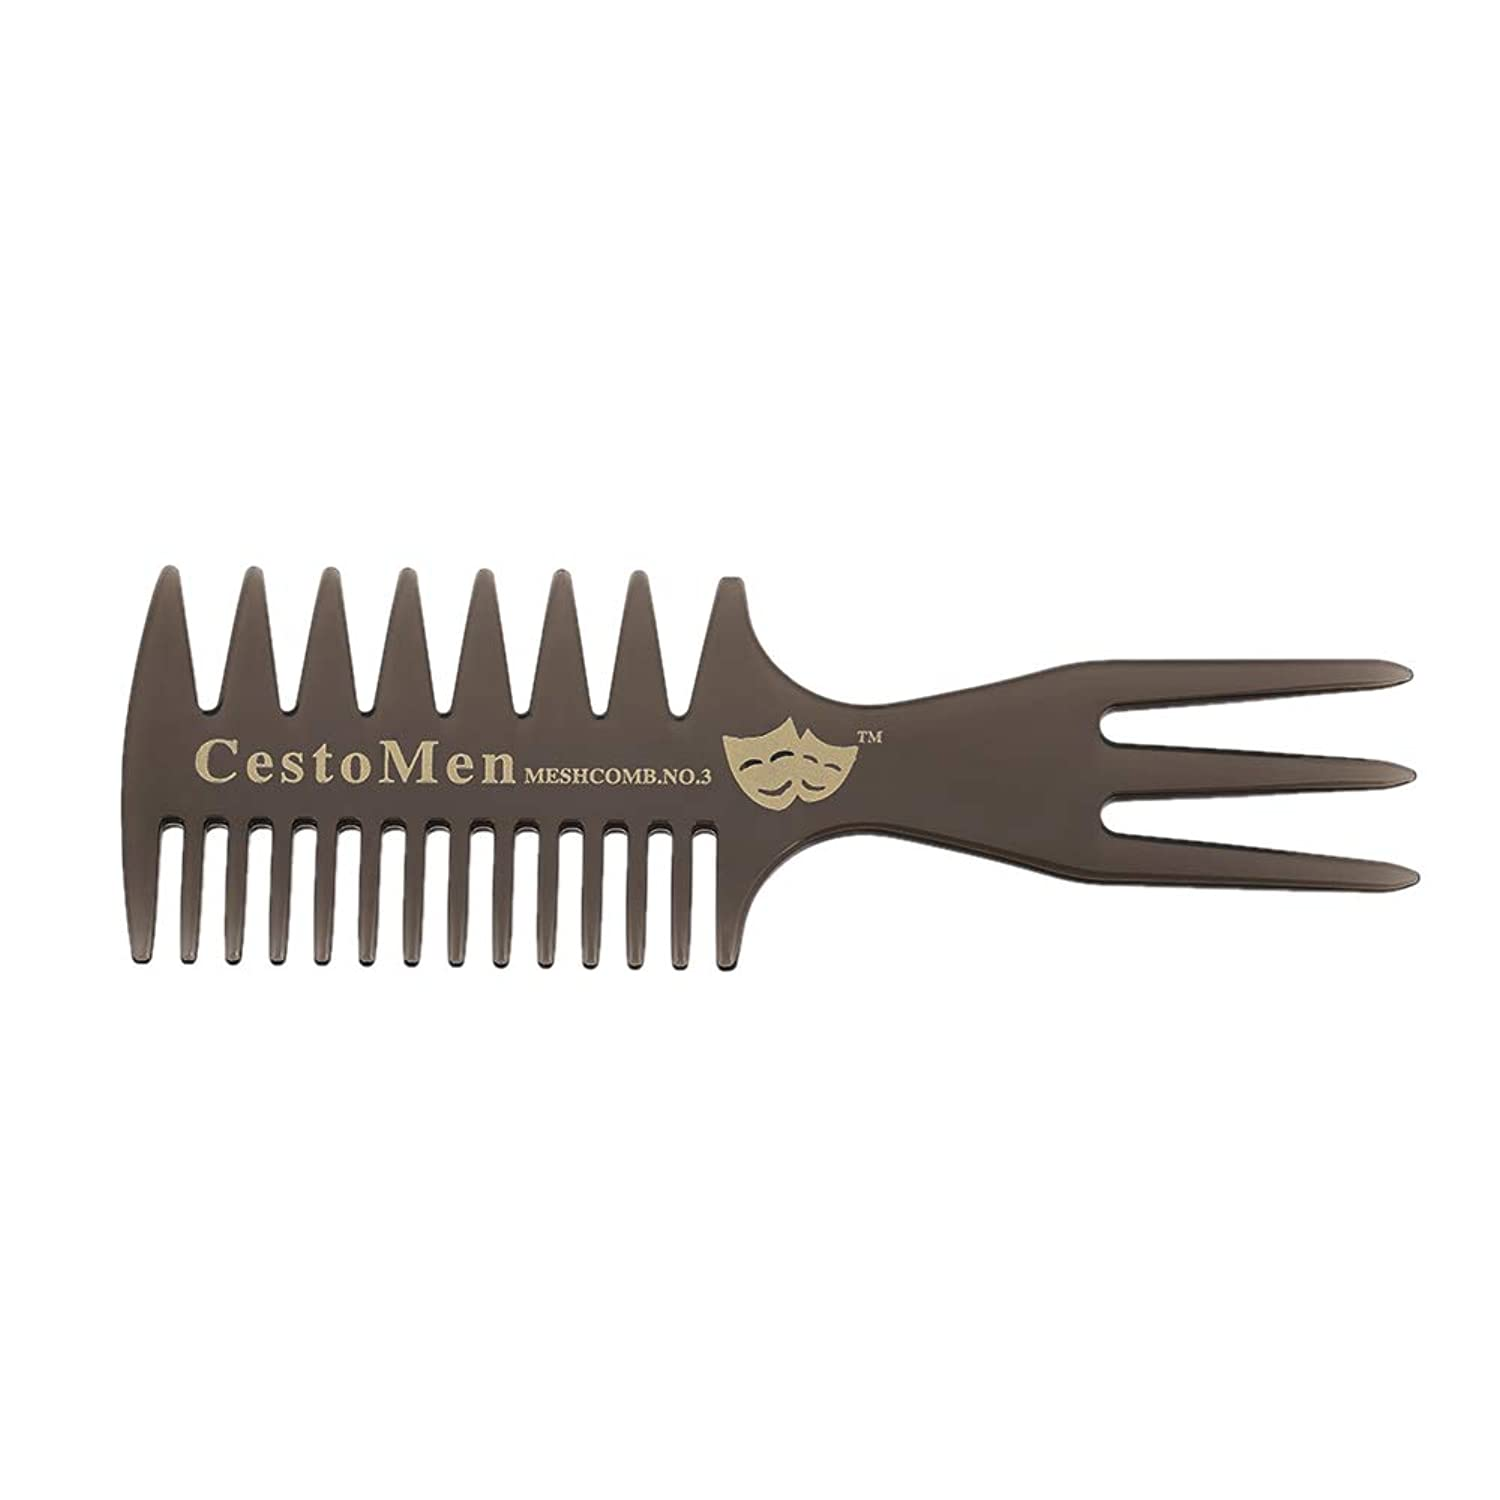 Three-sided Hair Comb Insert Afro Hair Pick Comb Male Wide Tooth Classic Oil Slick Styling Hair Brush For Hair Styling Tool